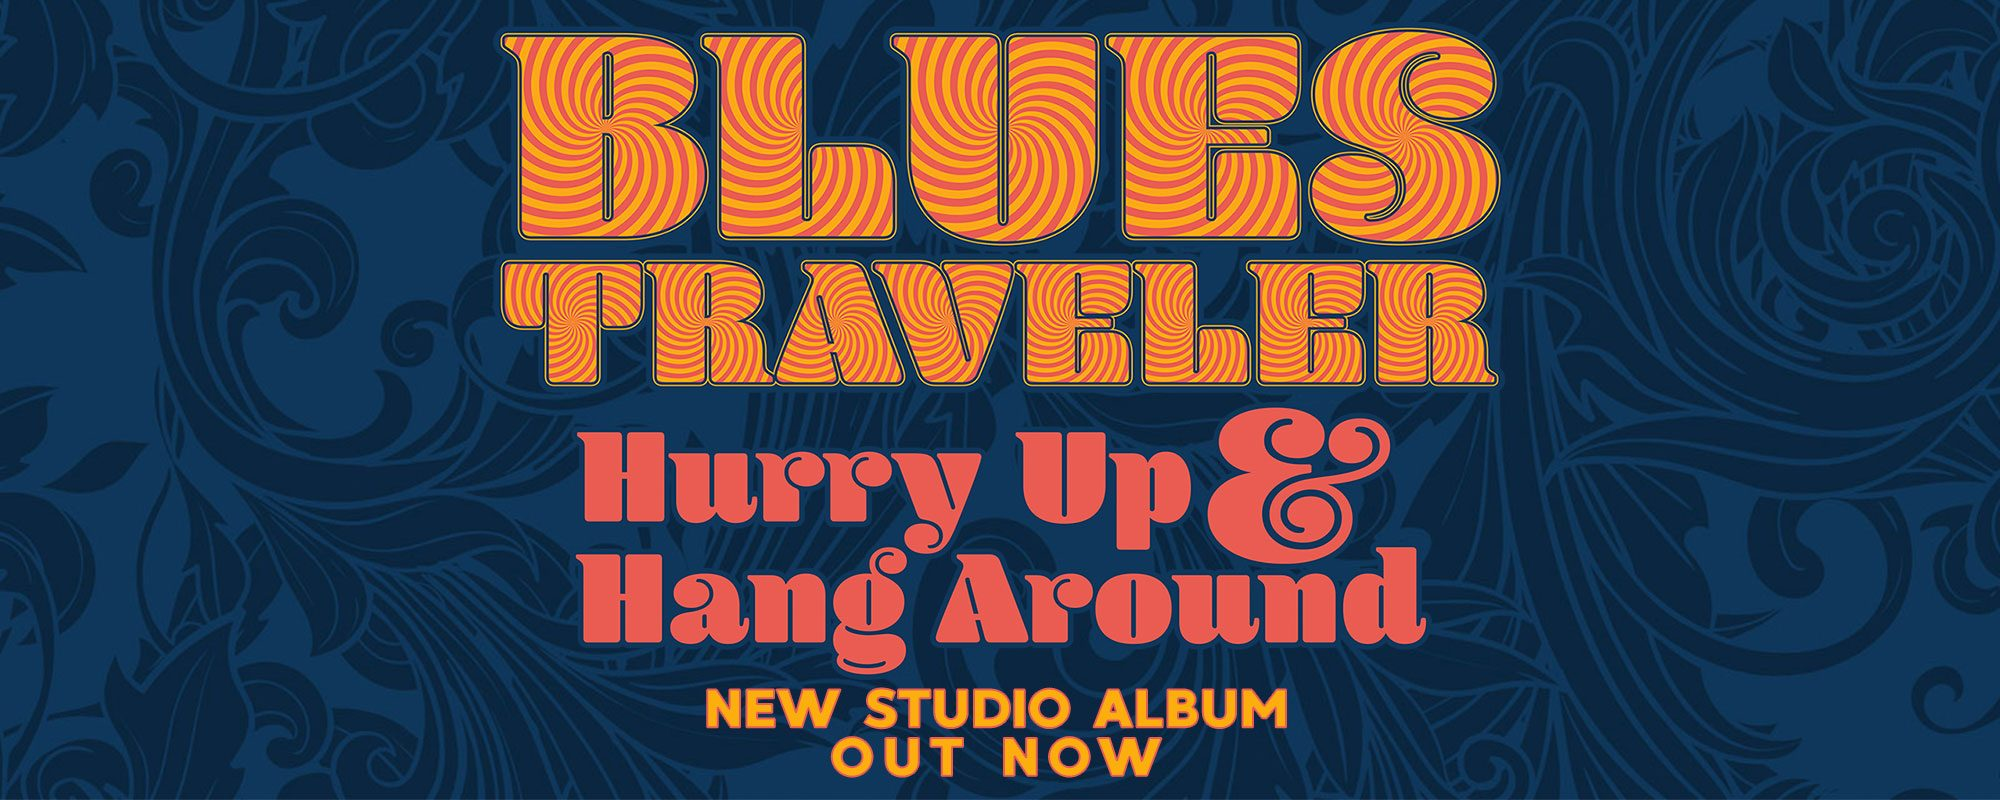 hurry up hang around out now blues traveler - Blues Traveler Christmas